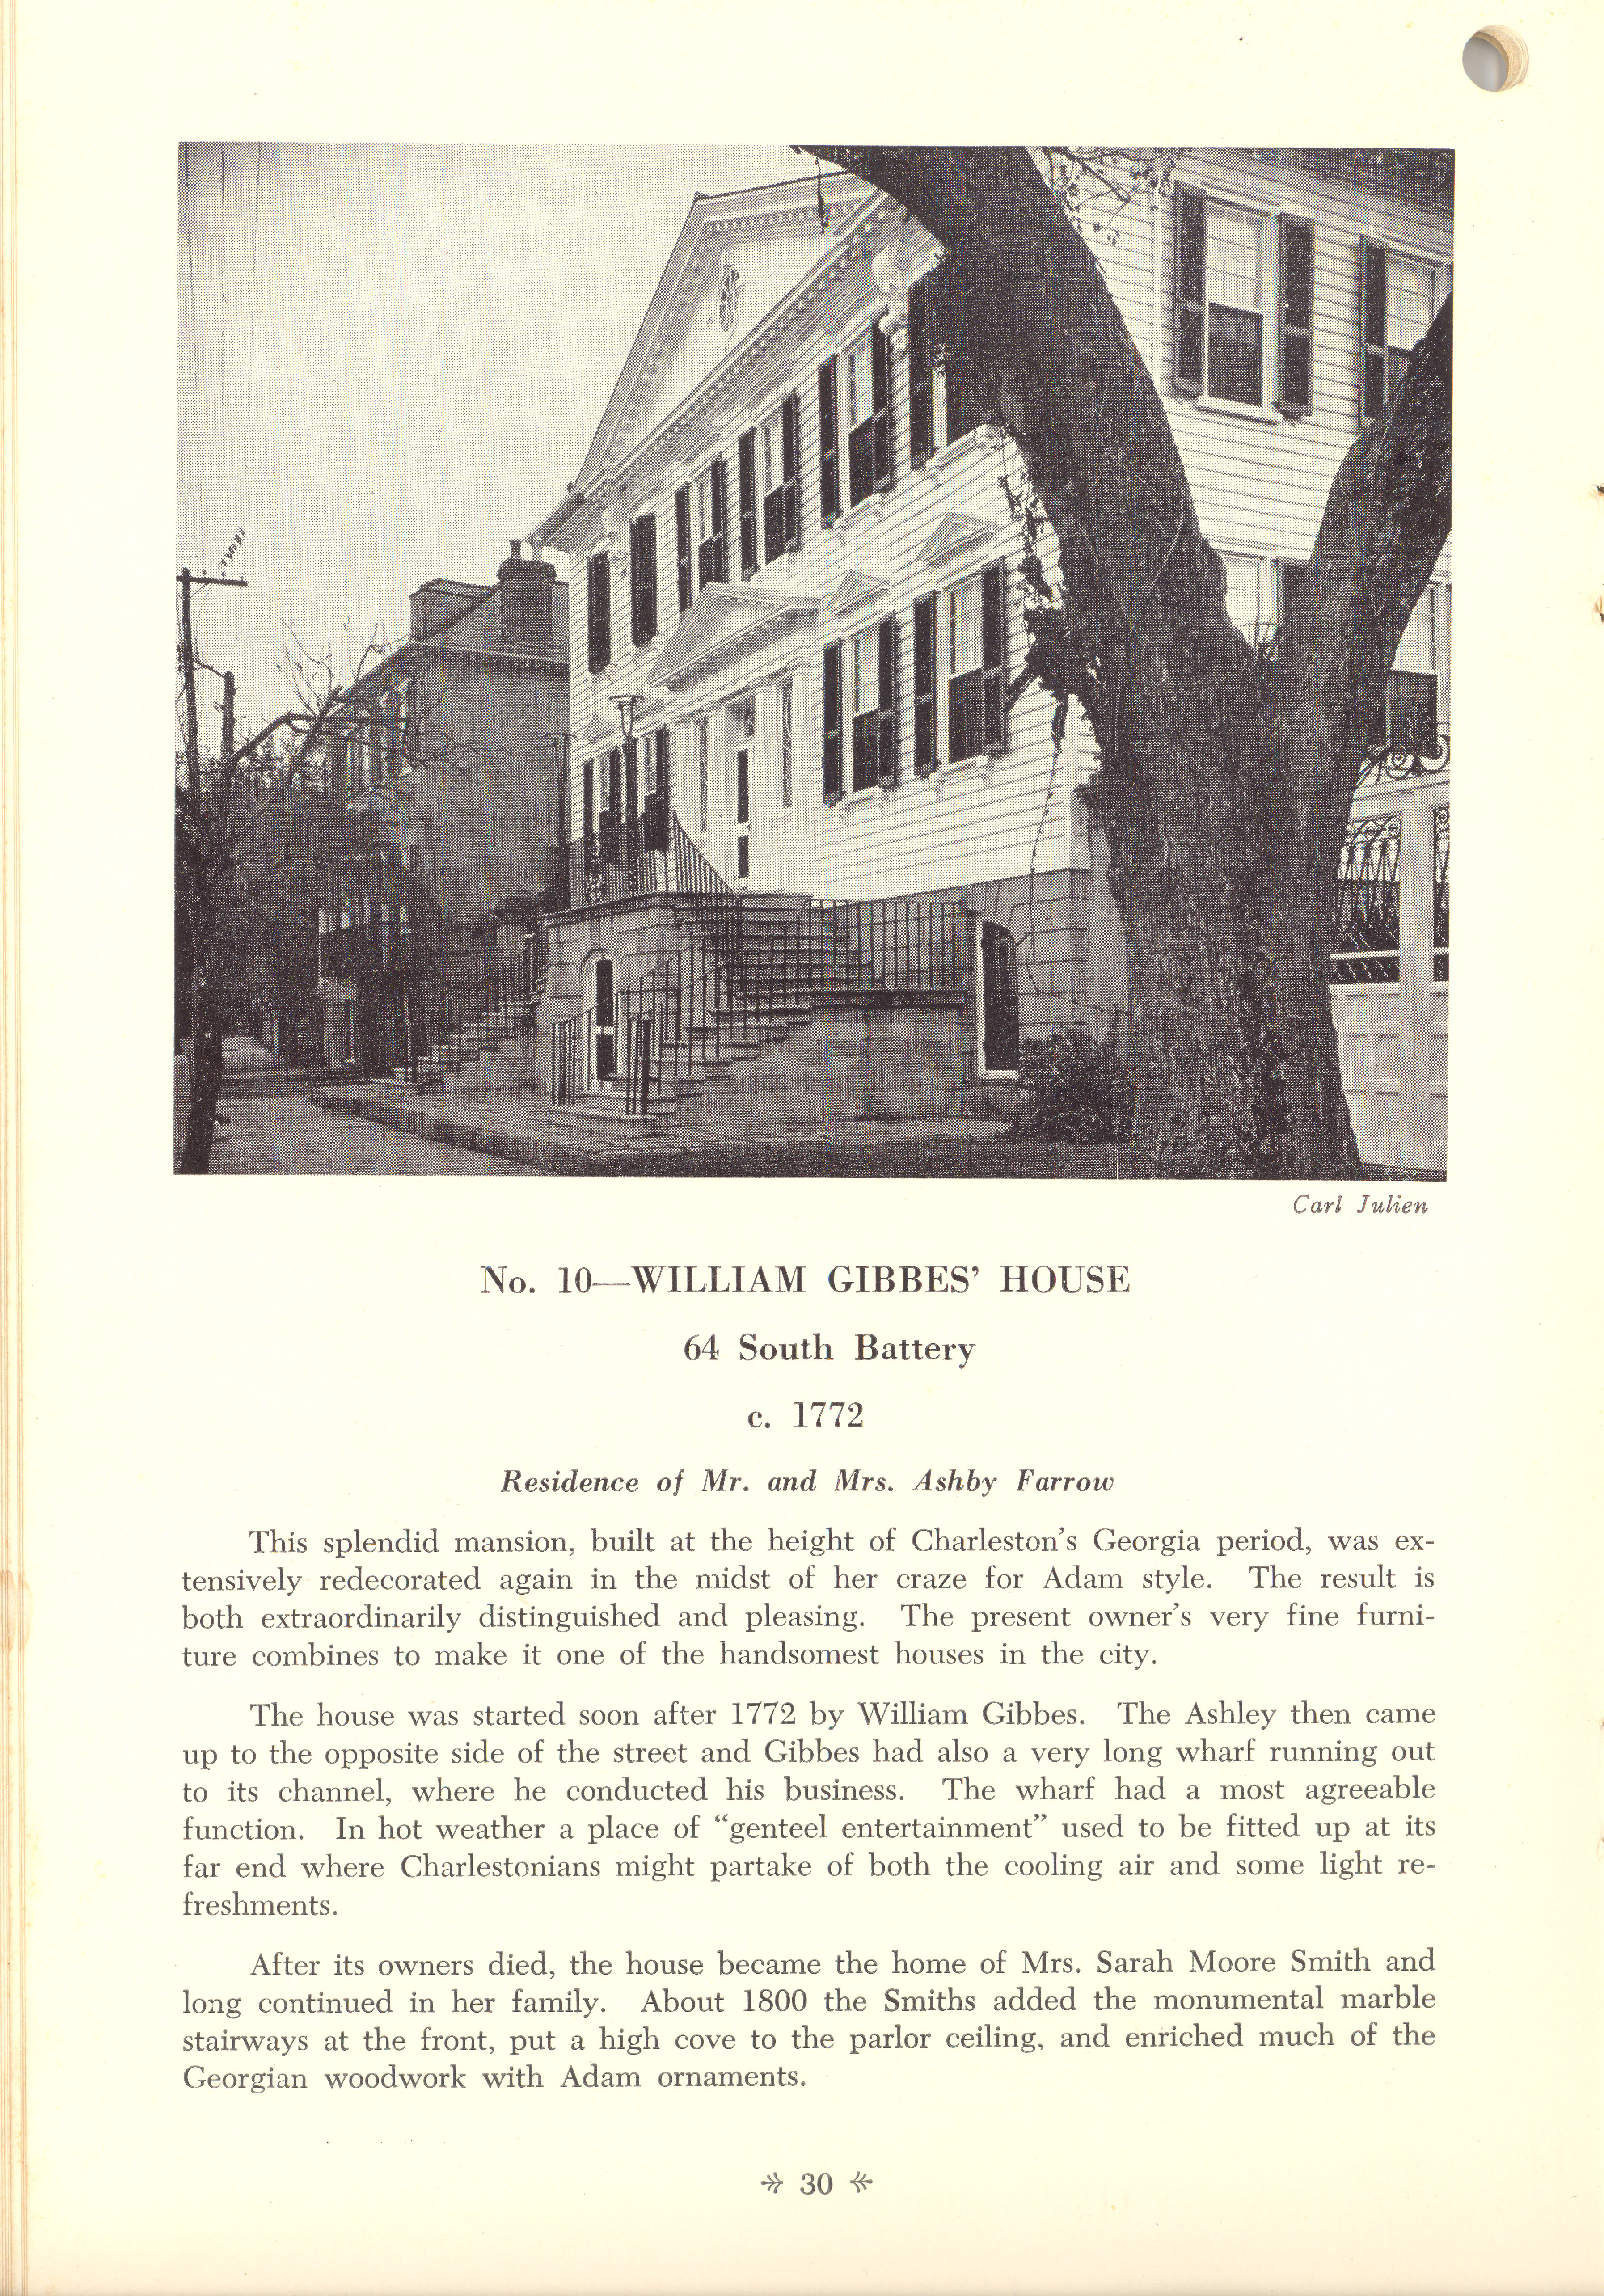 Page 30:  No. 10 - William Gibbes' House, 64 South Battery, c. 1772